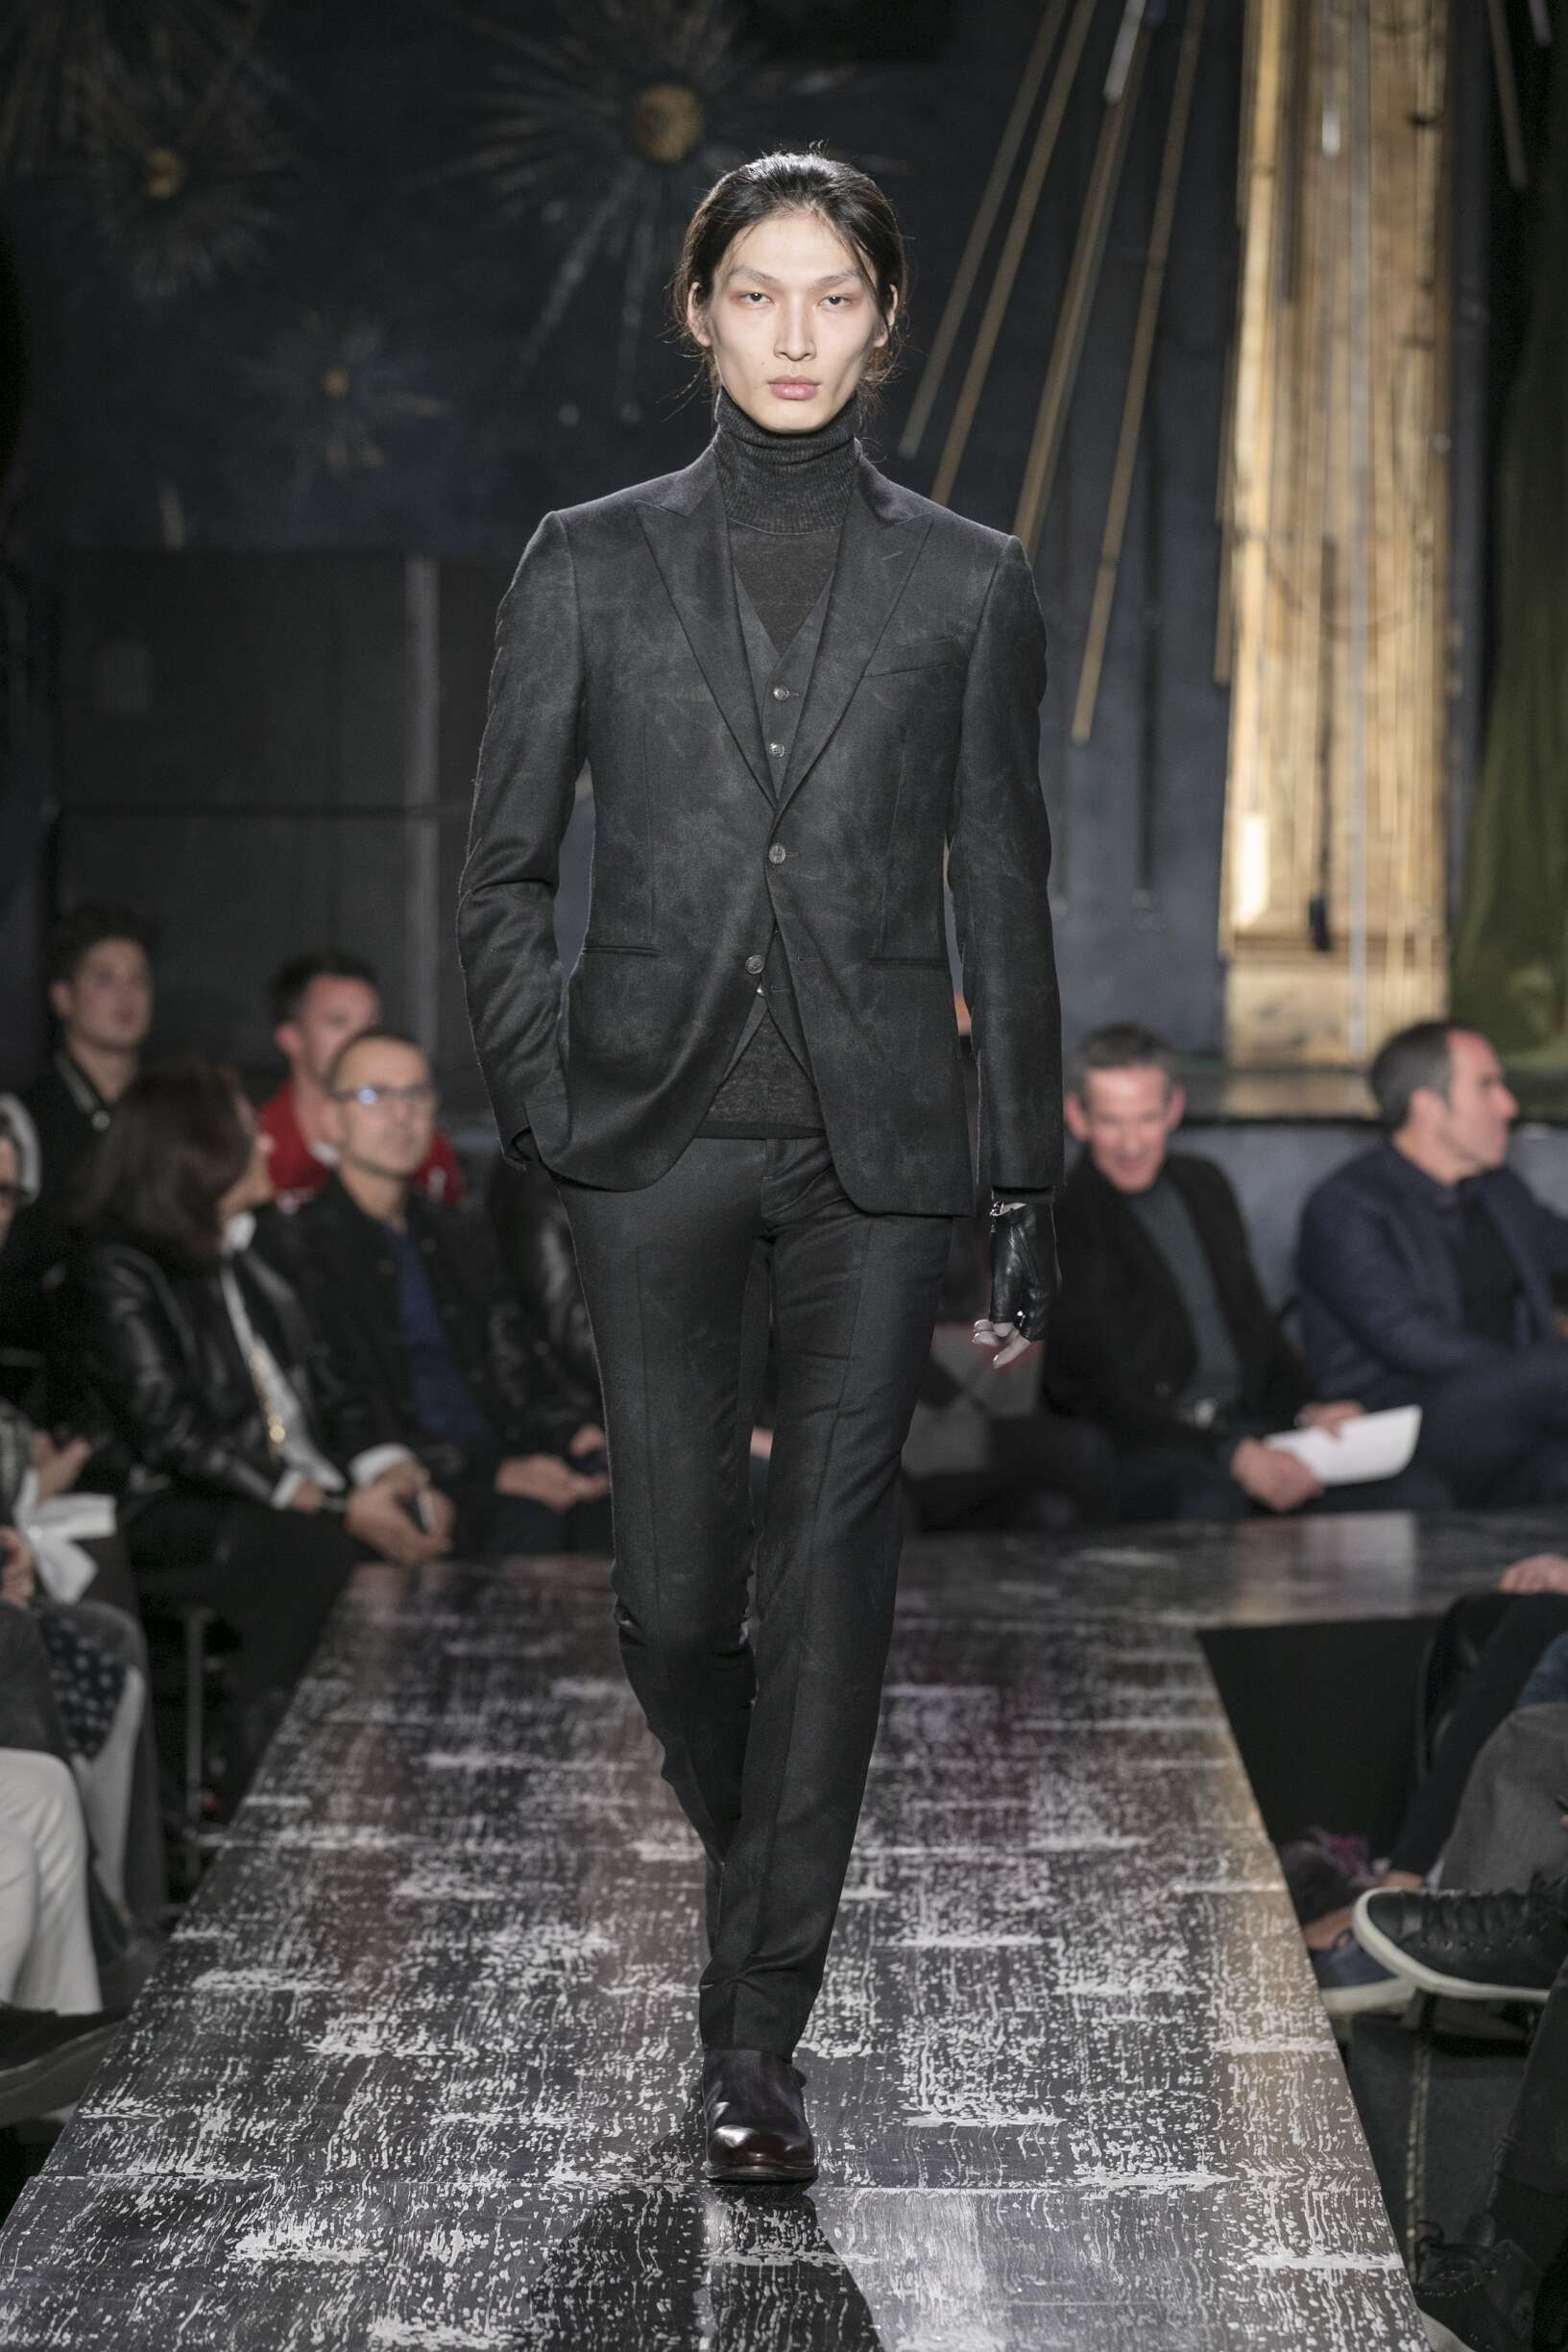 Fashion Model John Varvatos Catwalk